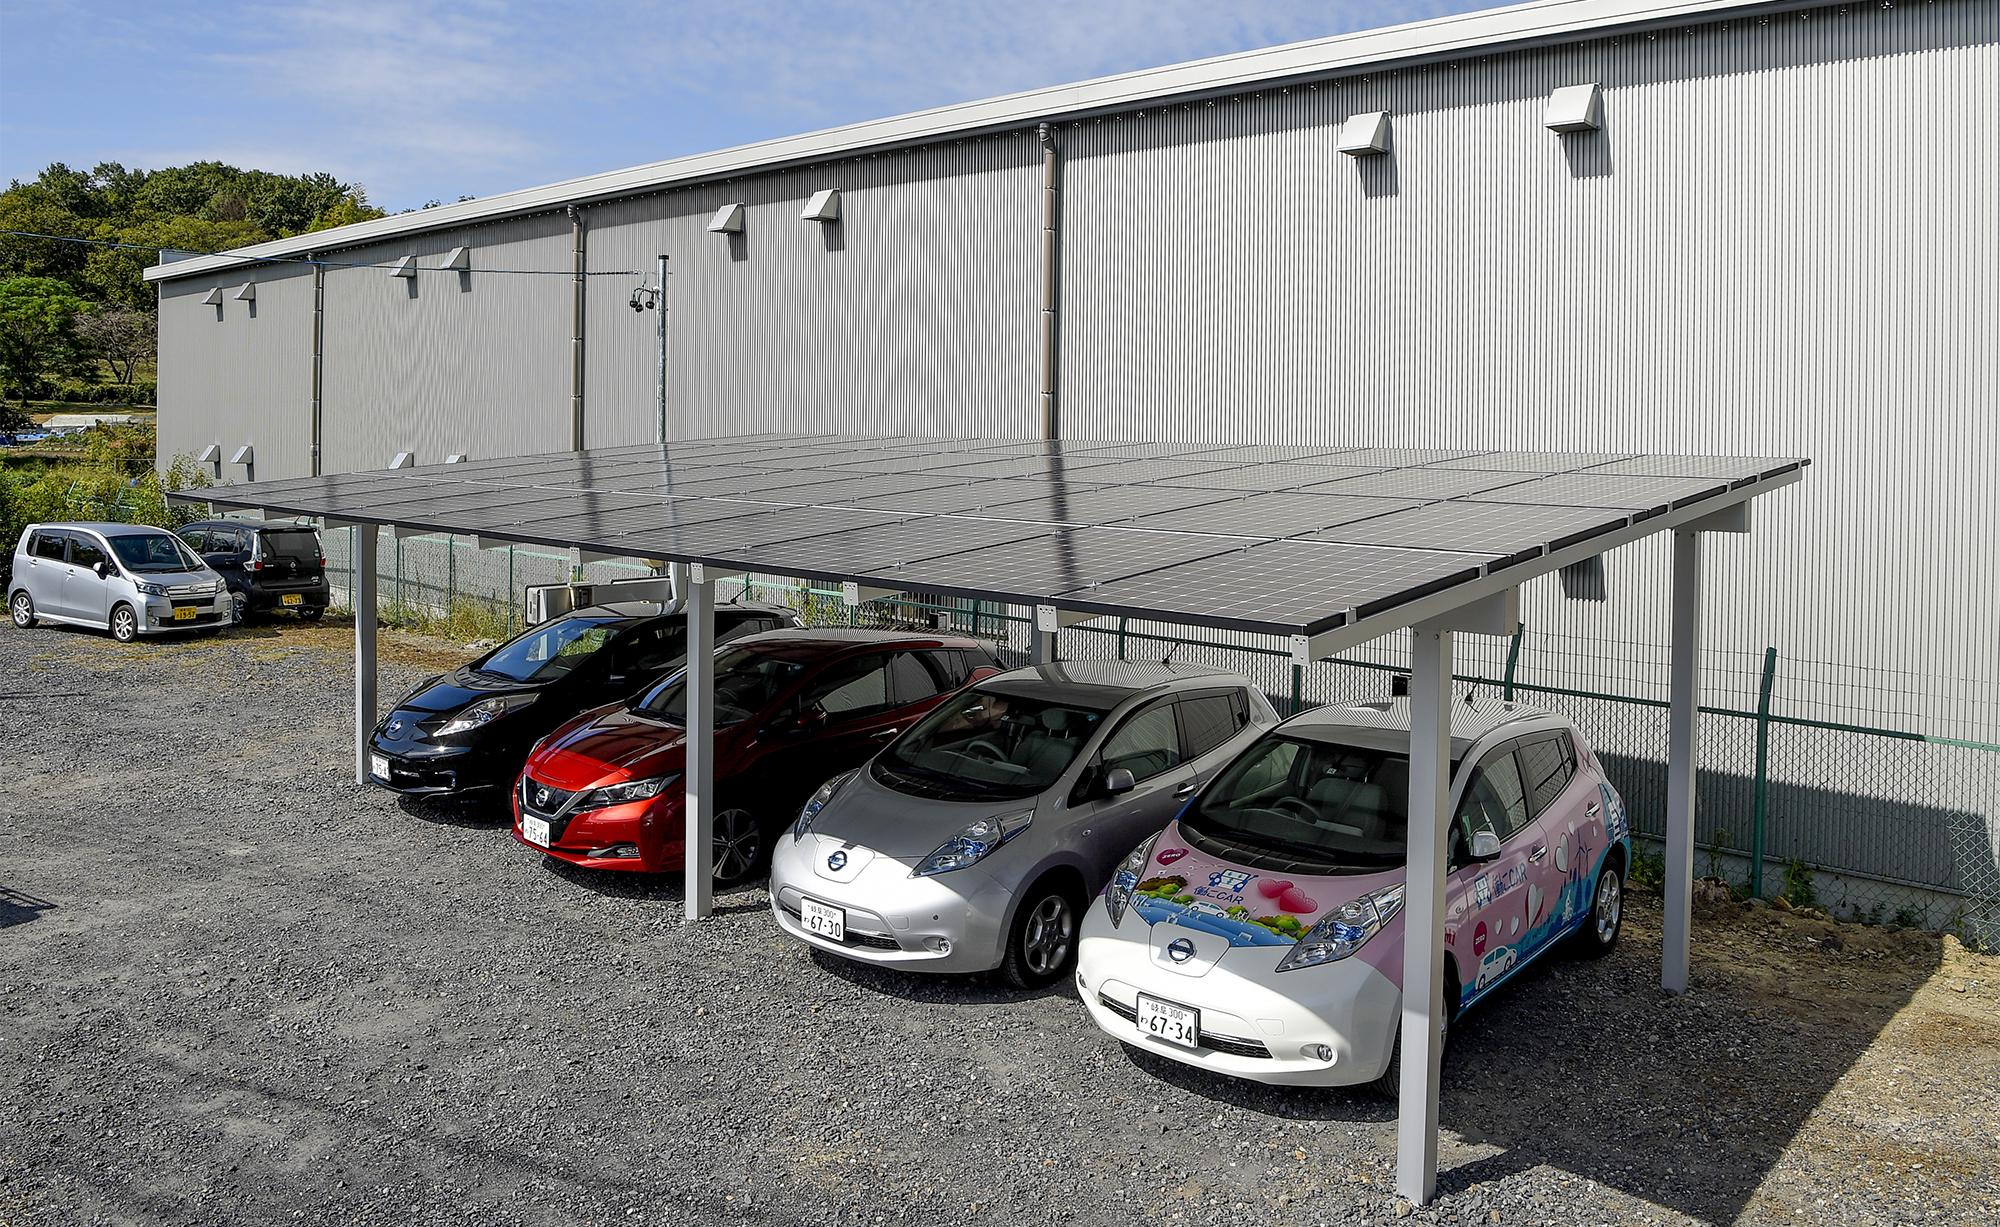 Photo: 4 cars can be parked in a solar garage with solar panels.